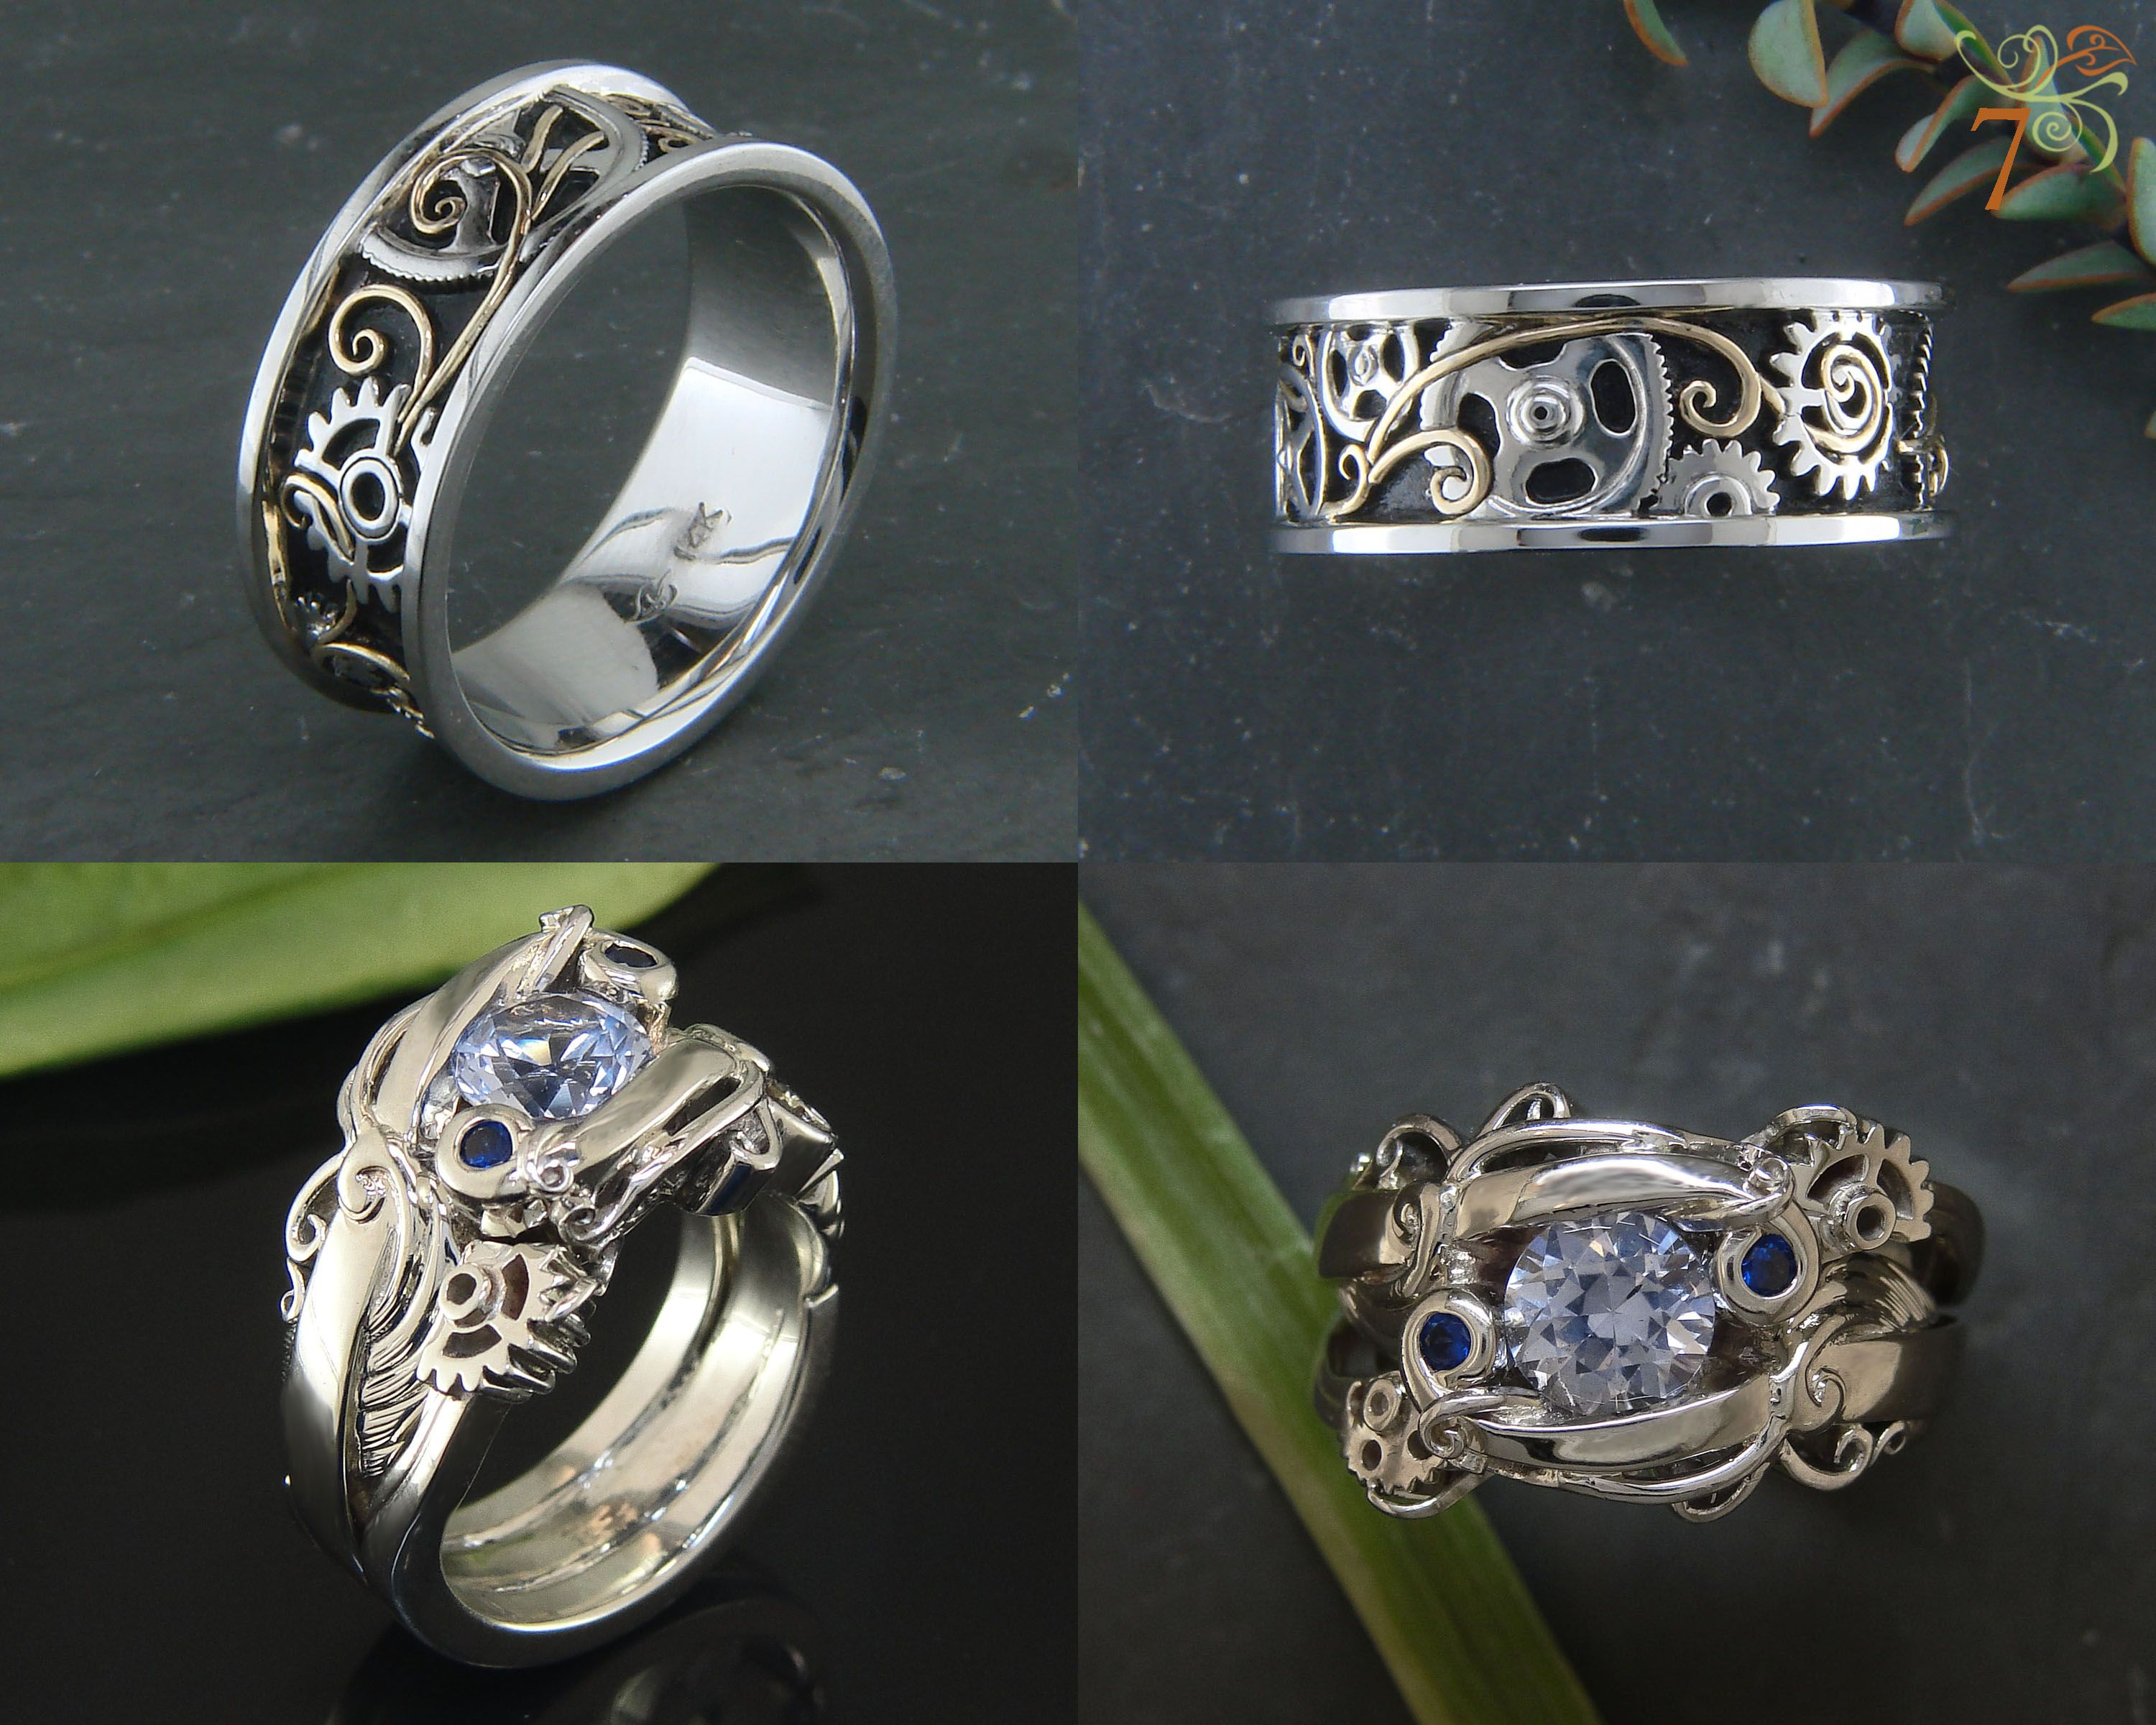 mechanical brothers h whitehouse a filigree rings engagement polishing vintage wedding ring